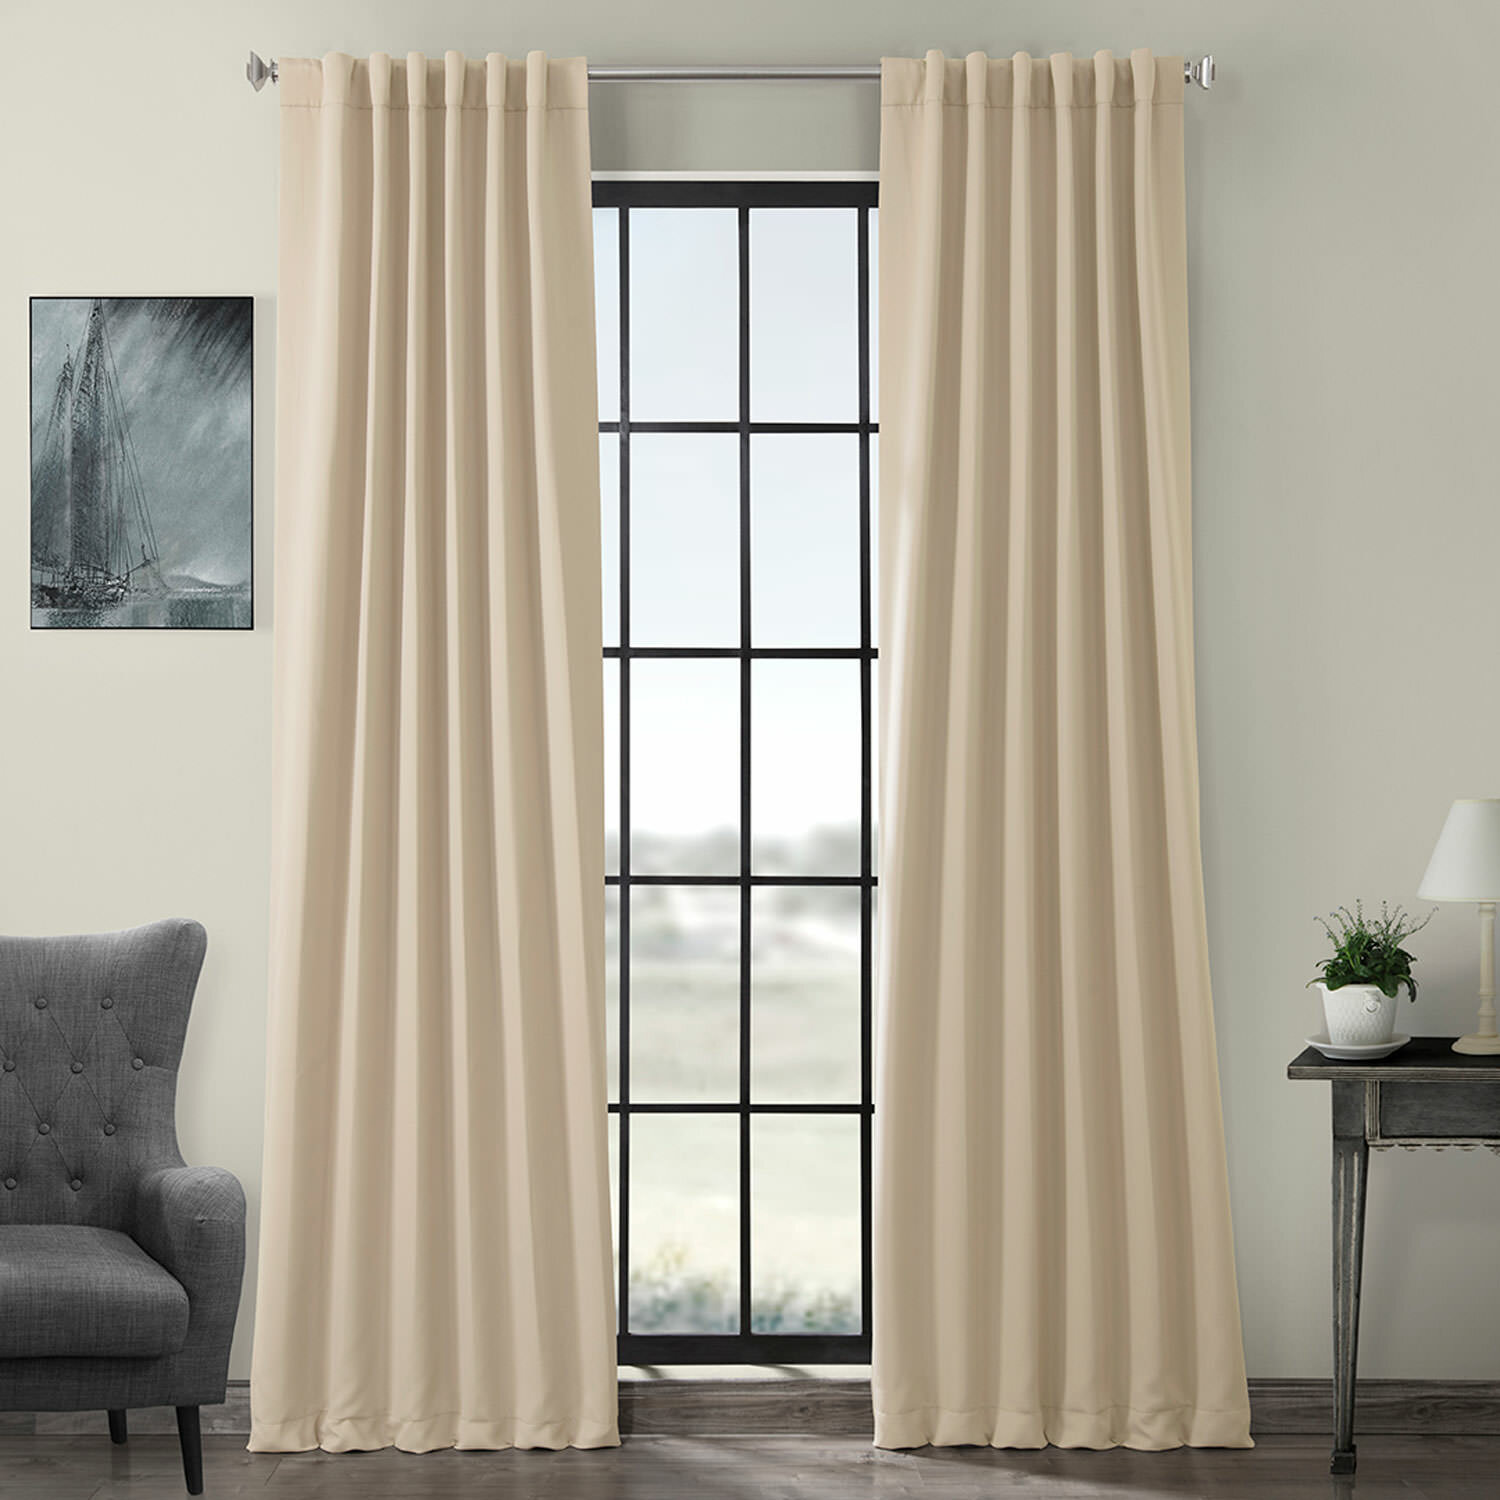 Thermal Insulated Tailored Curtains Privacy Drapes for Nursery